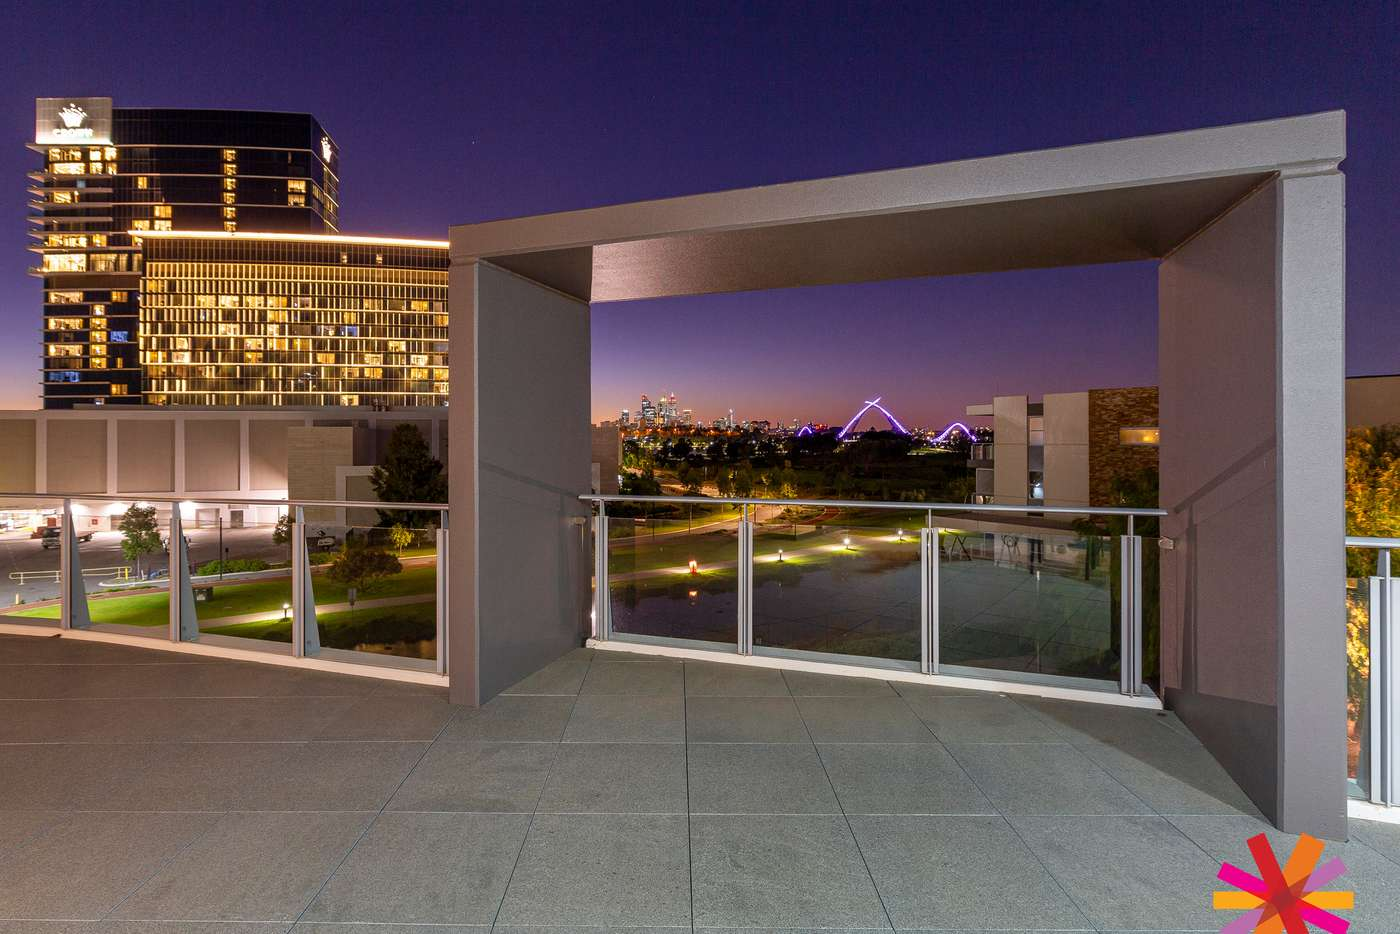 Main view of Homely apartment listing, 302/21 Bow River Crescent, Burswood WA 6100